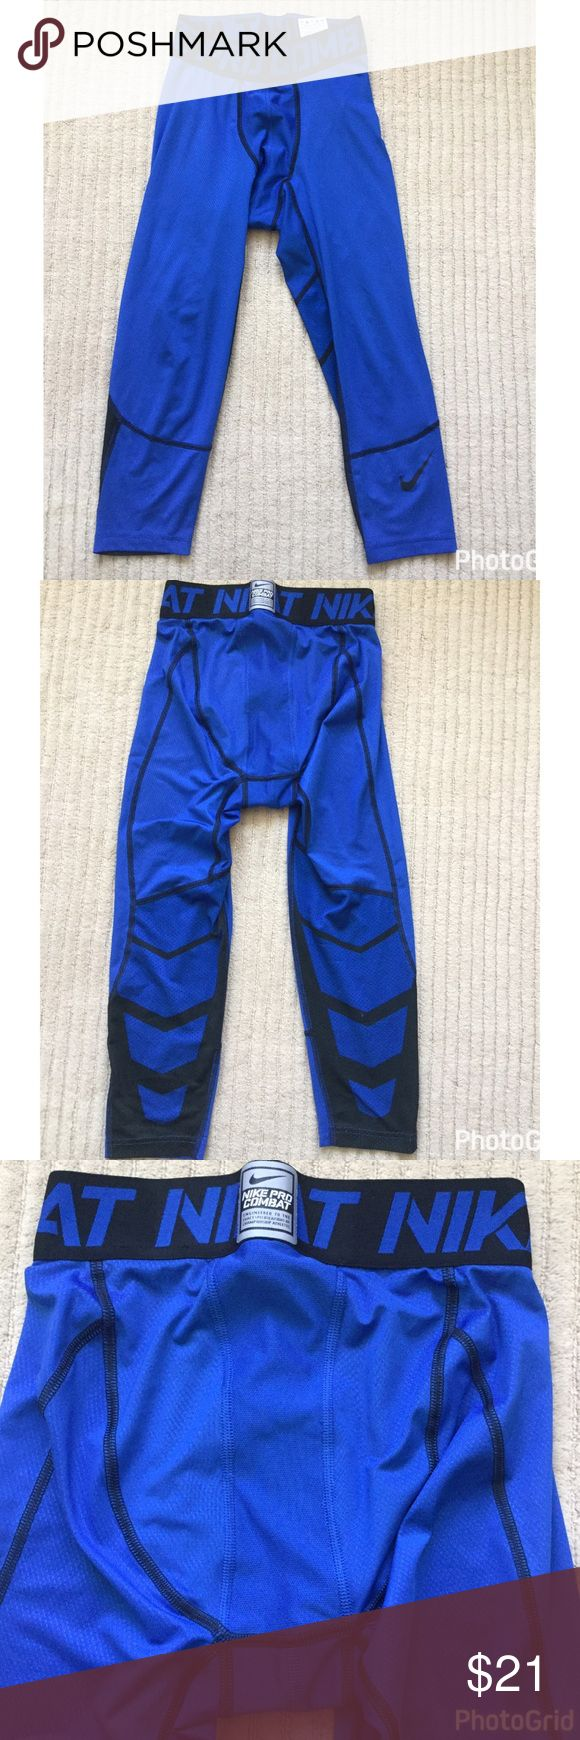 💜 Nike Pro Combat Men Basketball Tights Size S 3/4 Length layering Men's Basketball Tights in size S.  See pictures of the back of the right leg.  It has a few flaws and small hole but they are wearable and that can be easily fixed.  Please ask any questions. Blue with black. Nike Underwear & Socks